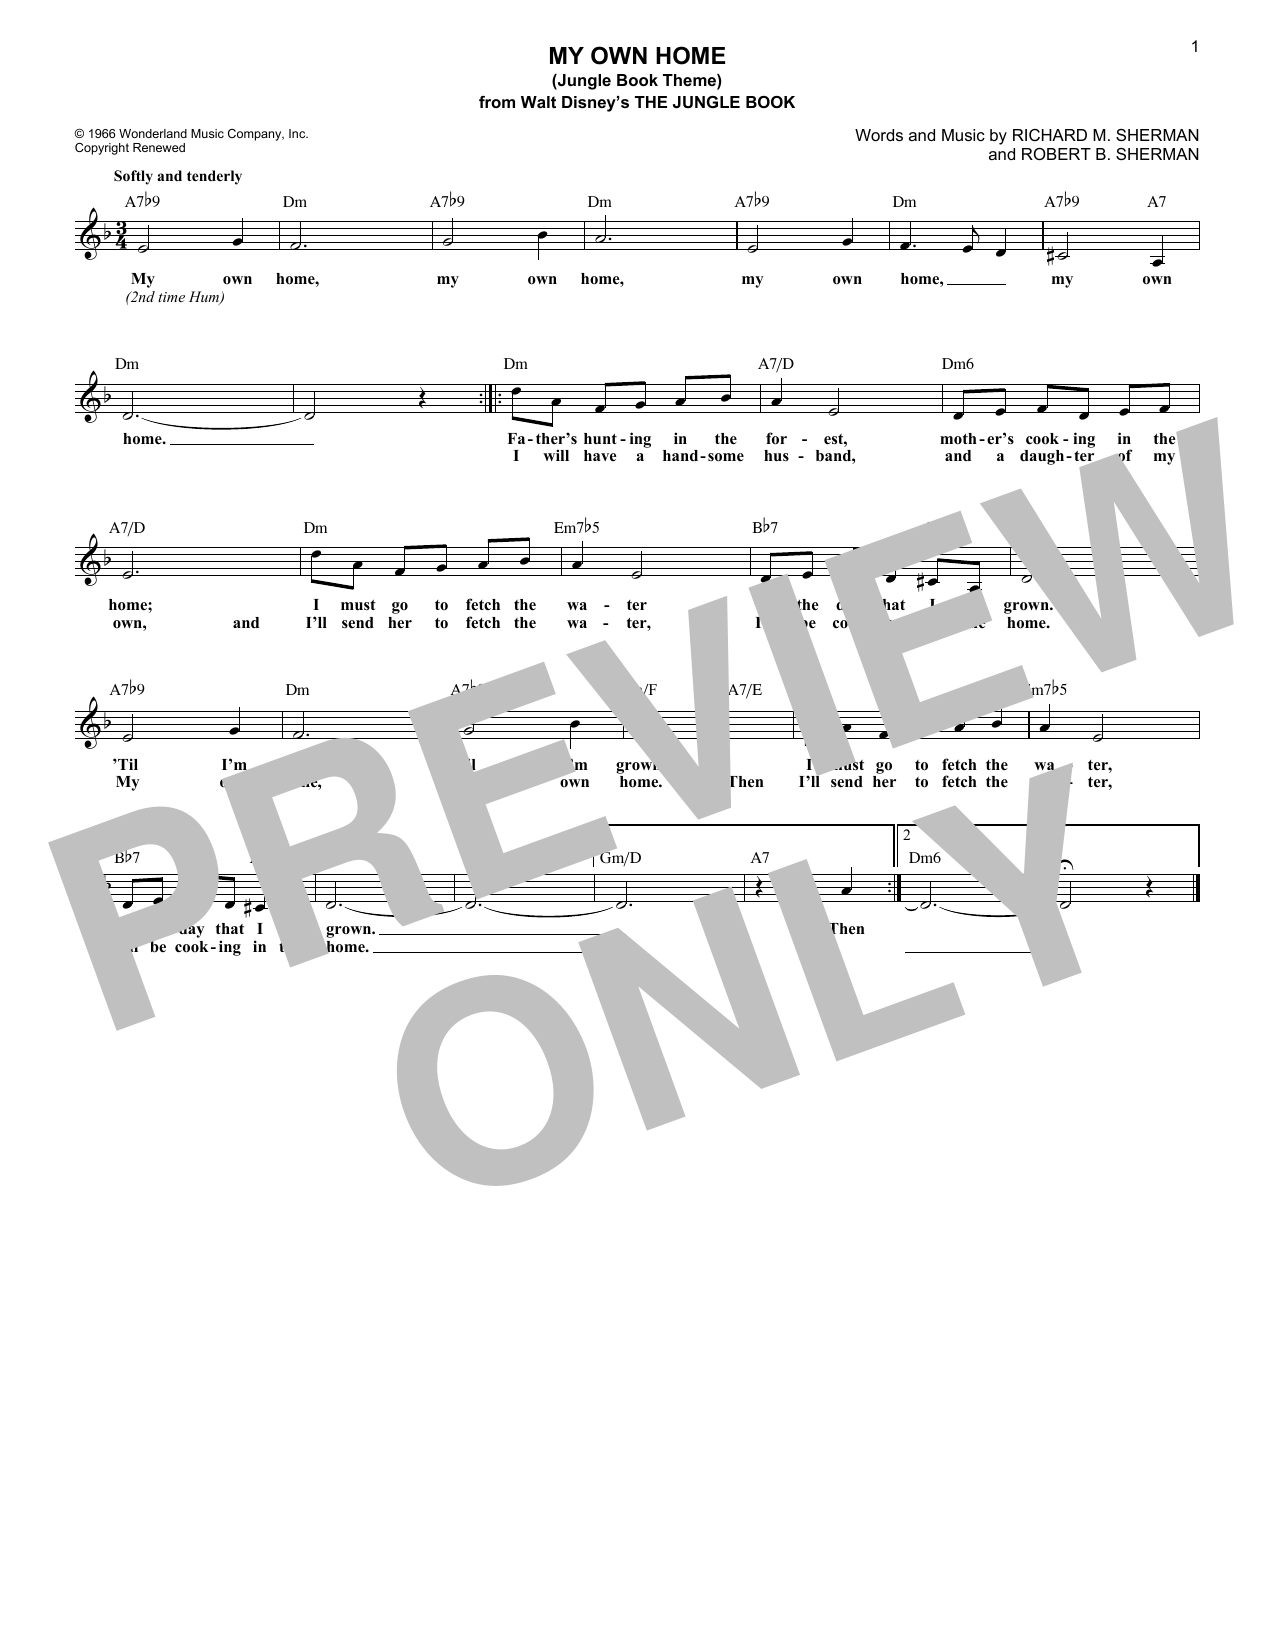 My Own Home (Jungle Book Theme) Sheet Music